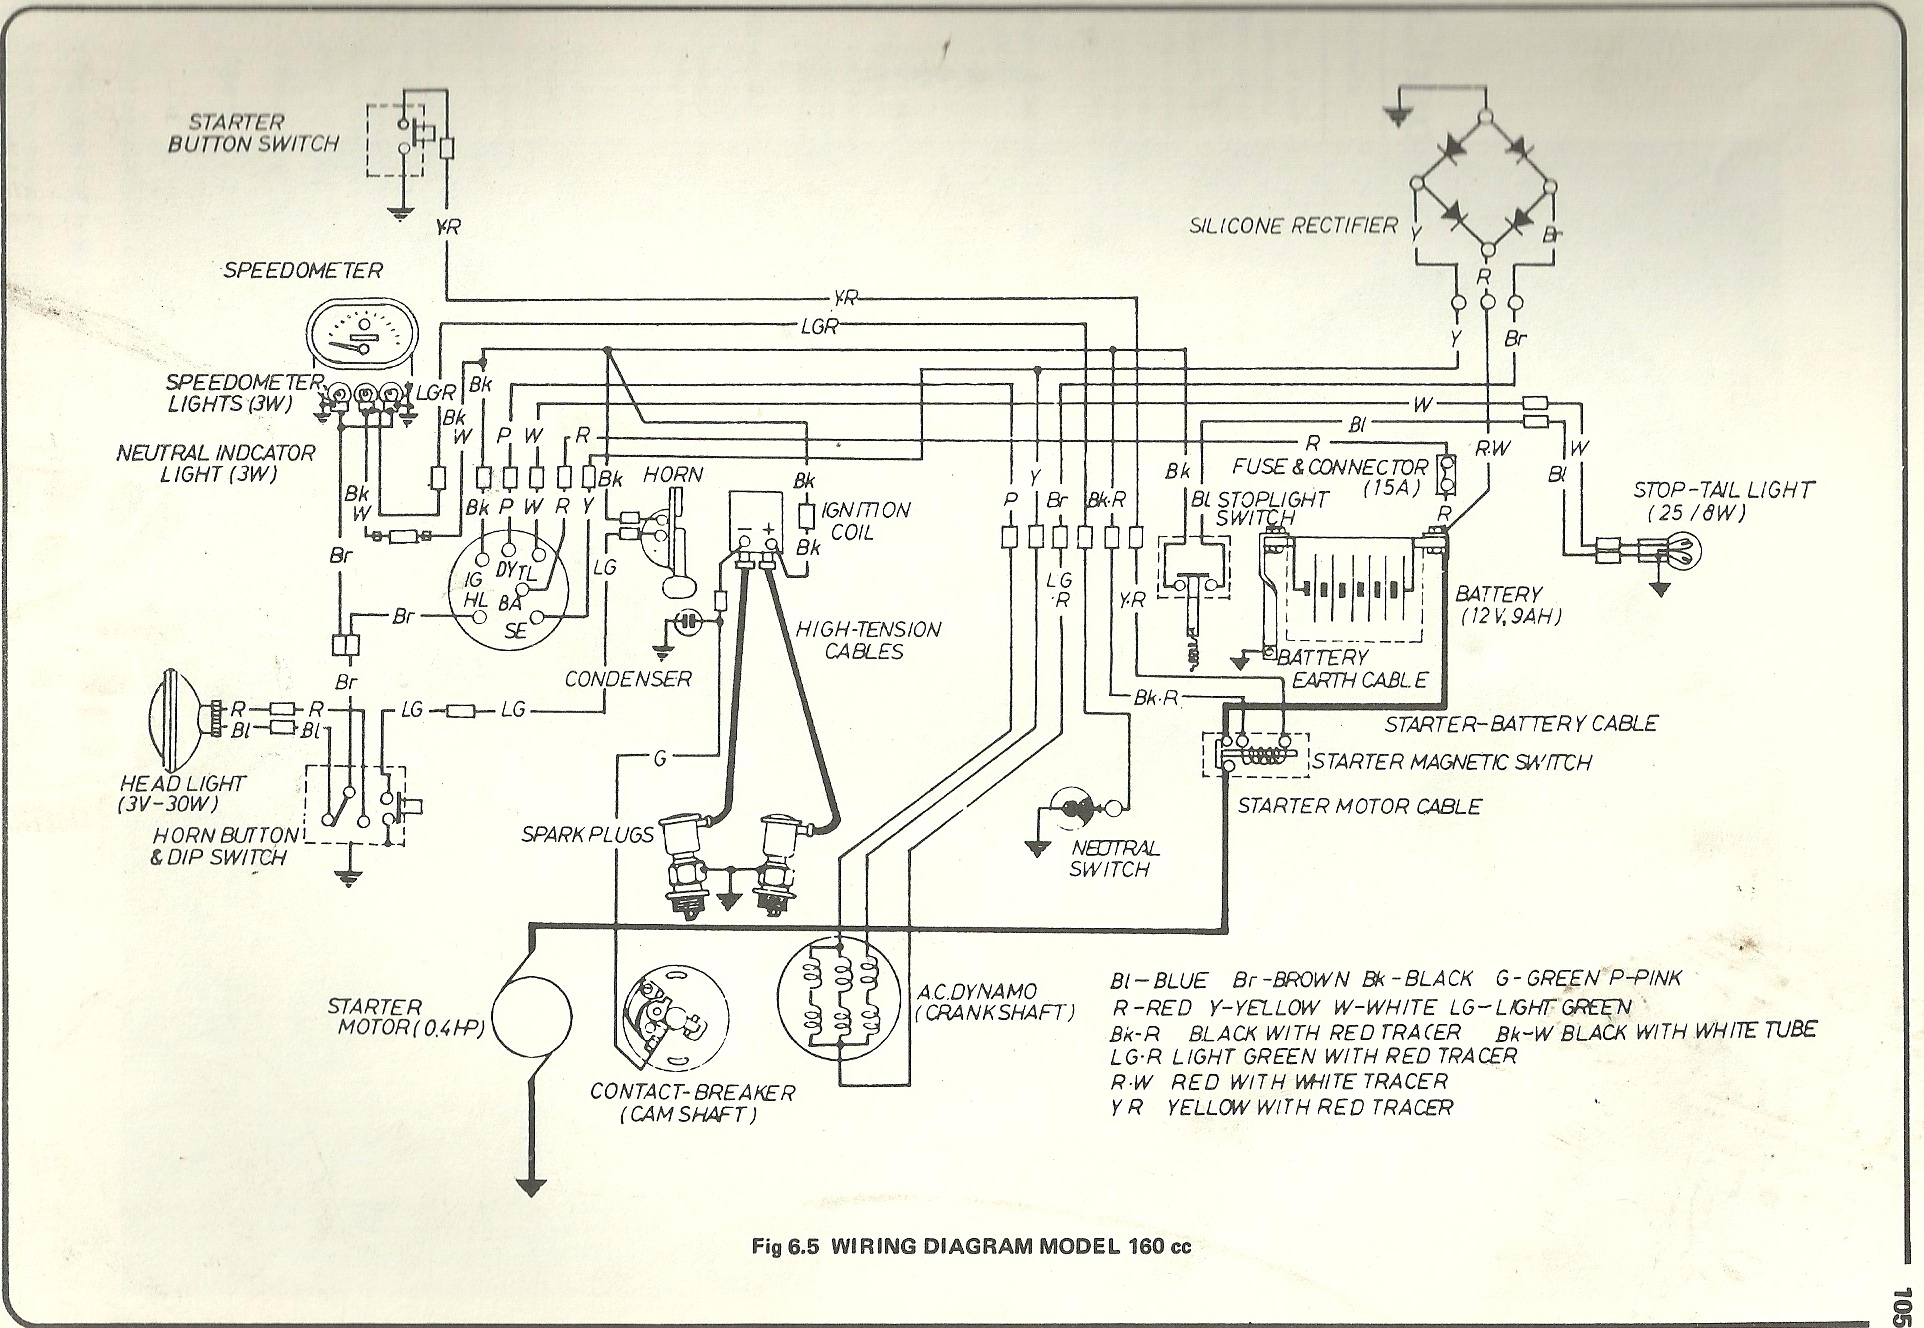 CB1602 wiring diagrams 1975 honda ct90 wiring diagram at panicattacktreatment.co